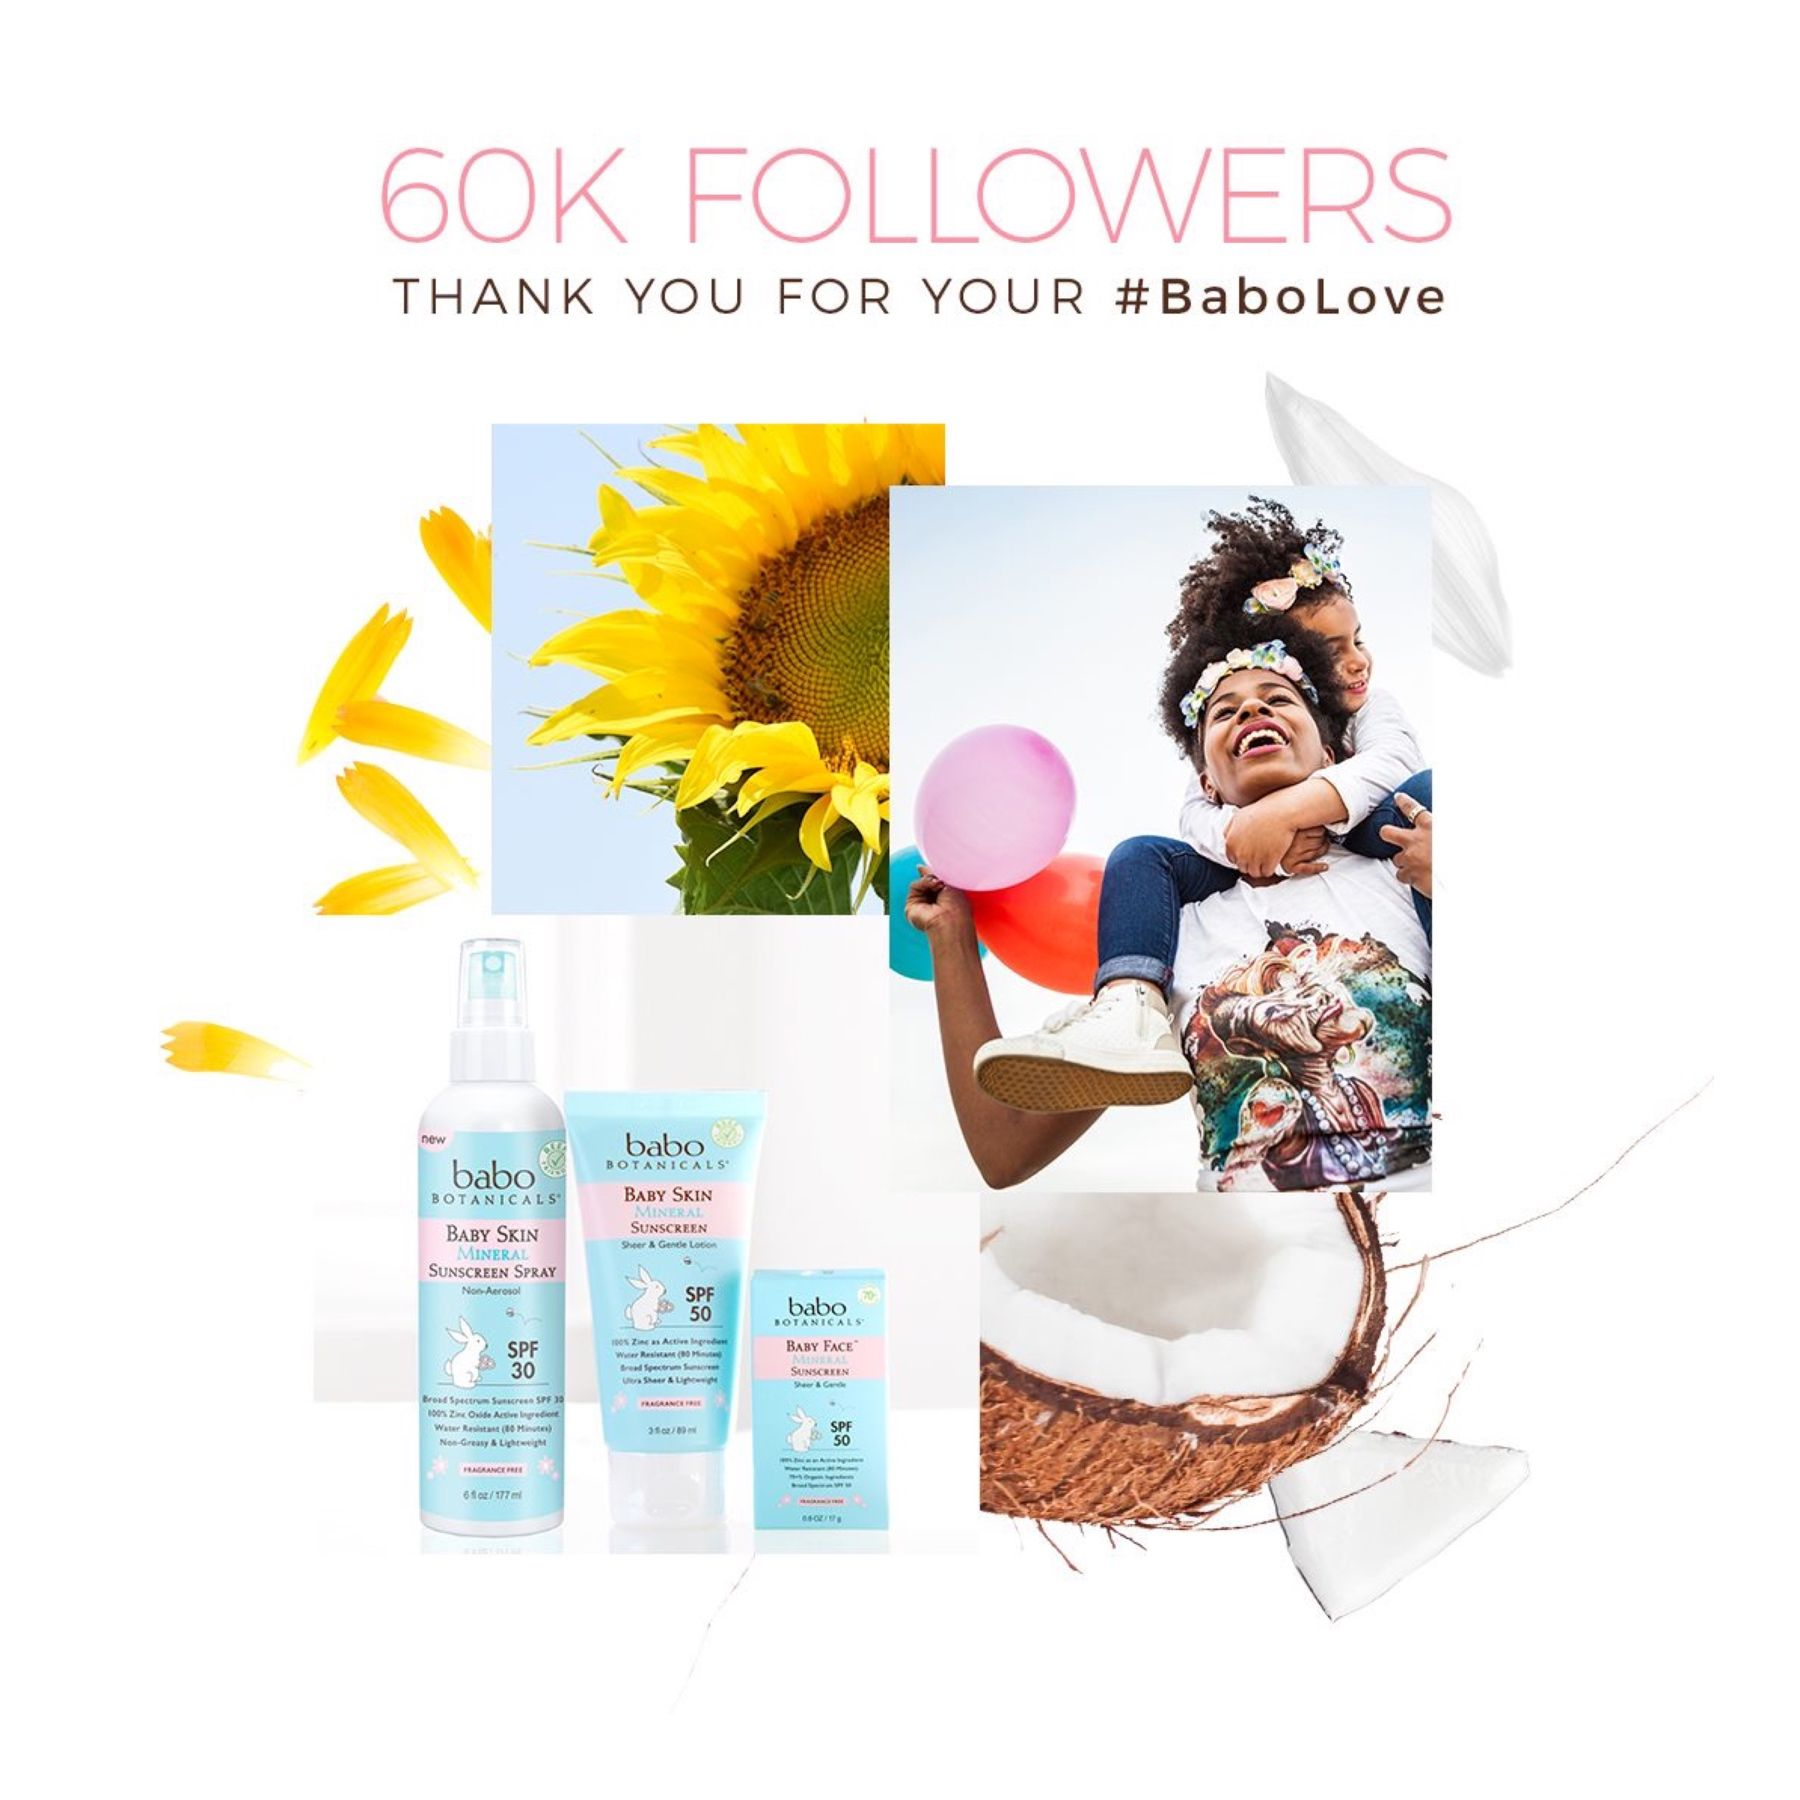 60k Followers Thank You For Your Babolove In 2020 Babo Botanicals Bab Botanical